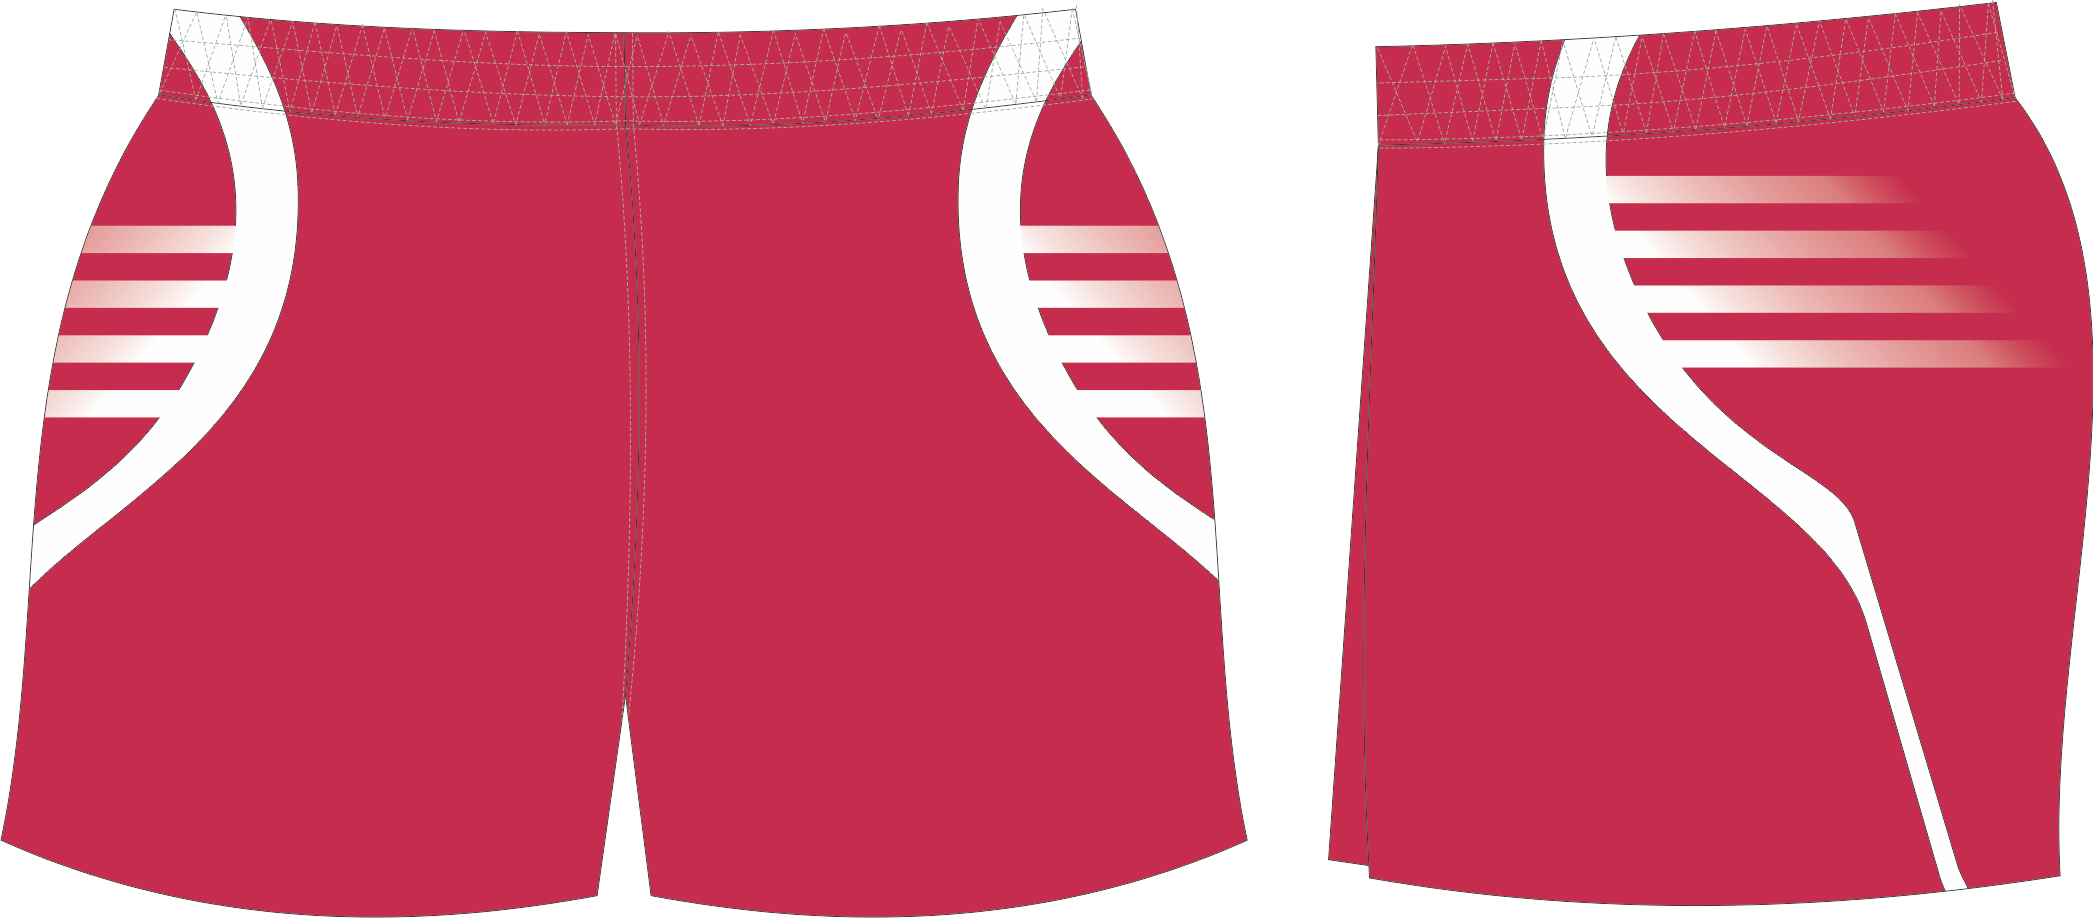 S201XSHT Red White club Shorts.png